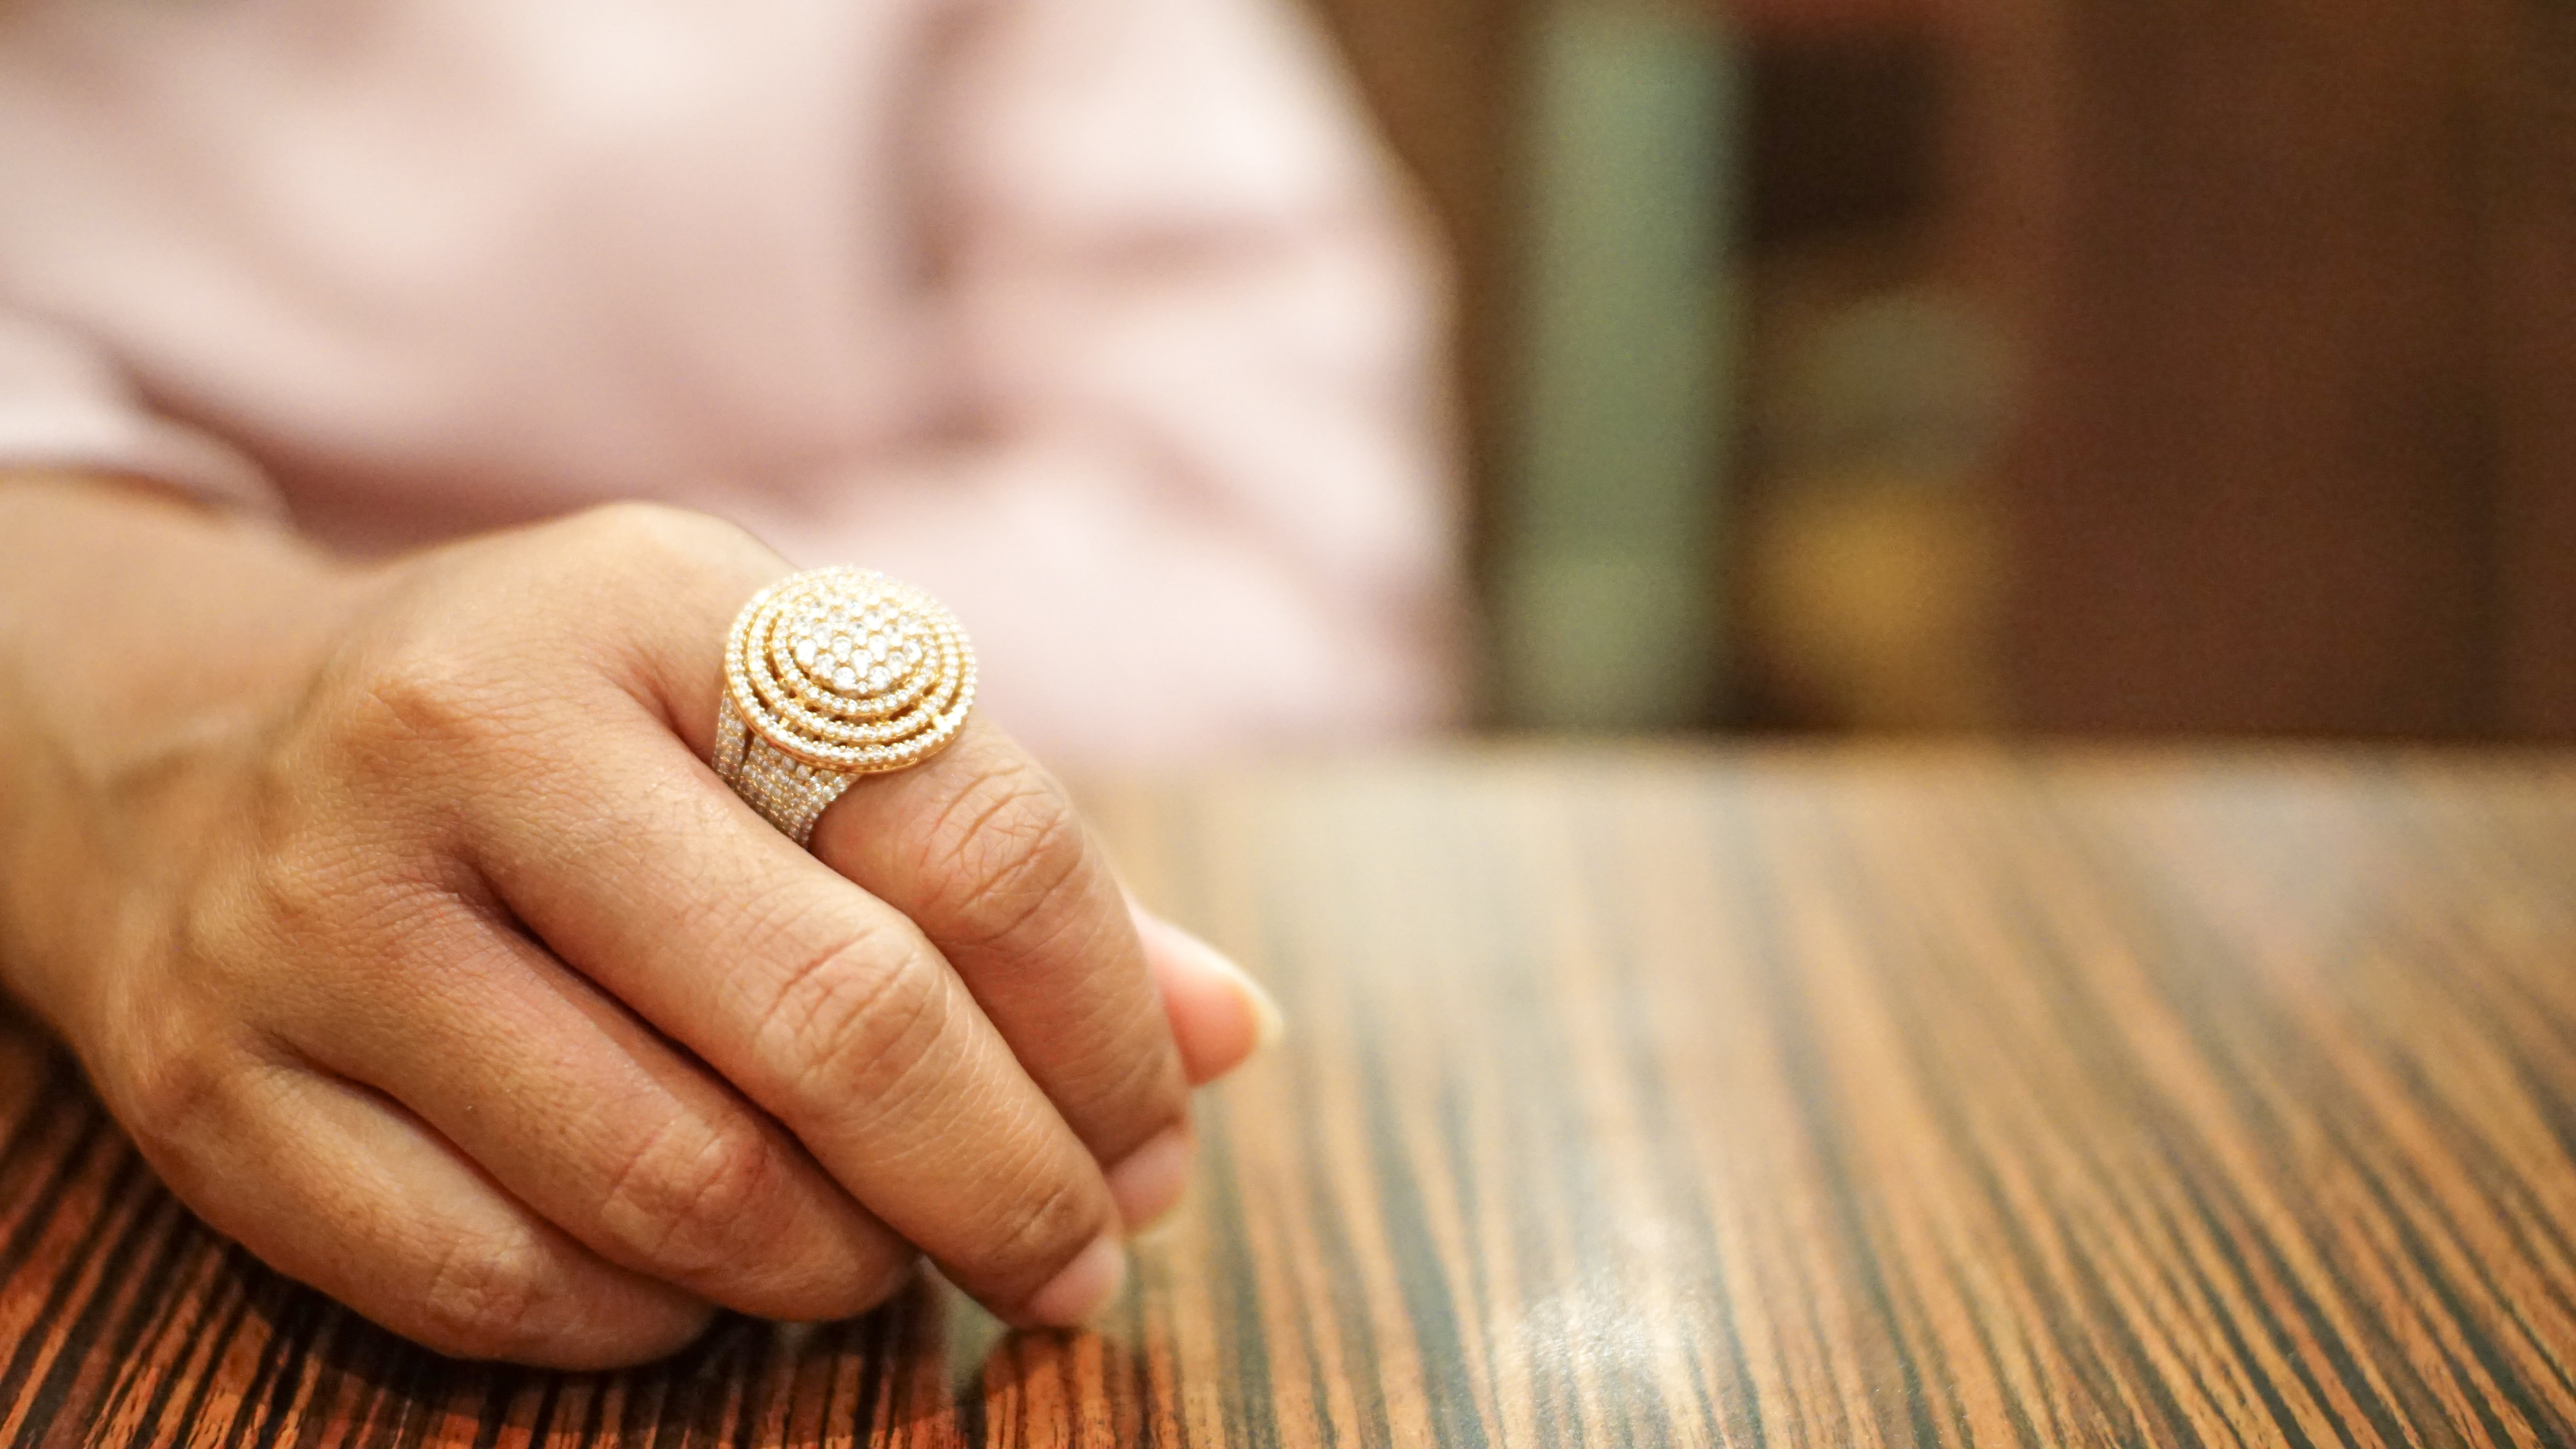 person wearing gold-colored ring